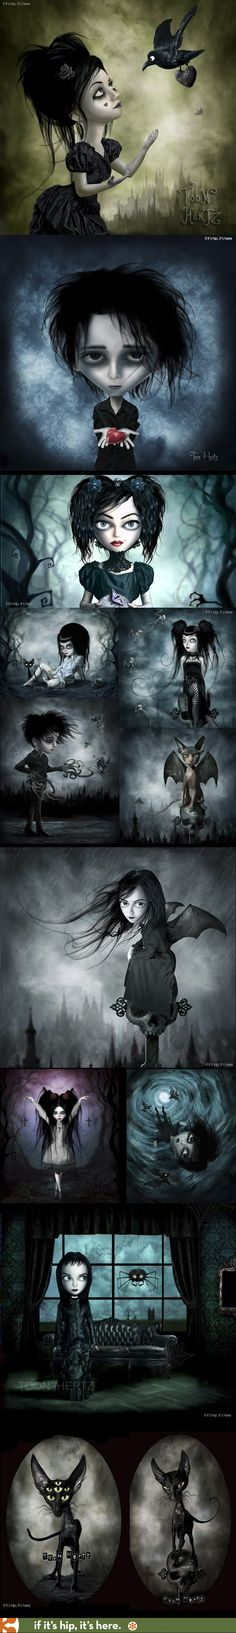 The Gothic Art of Toon Hertz – 25 Bewitching Examples at: http://www.ifitshipitshere.com/the-gothic-art-of-toon-hertz/